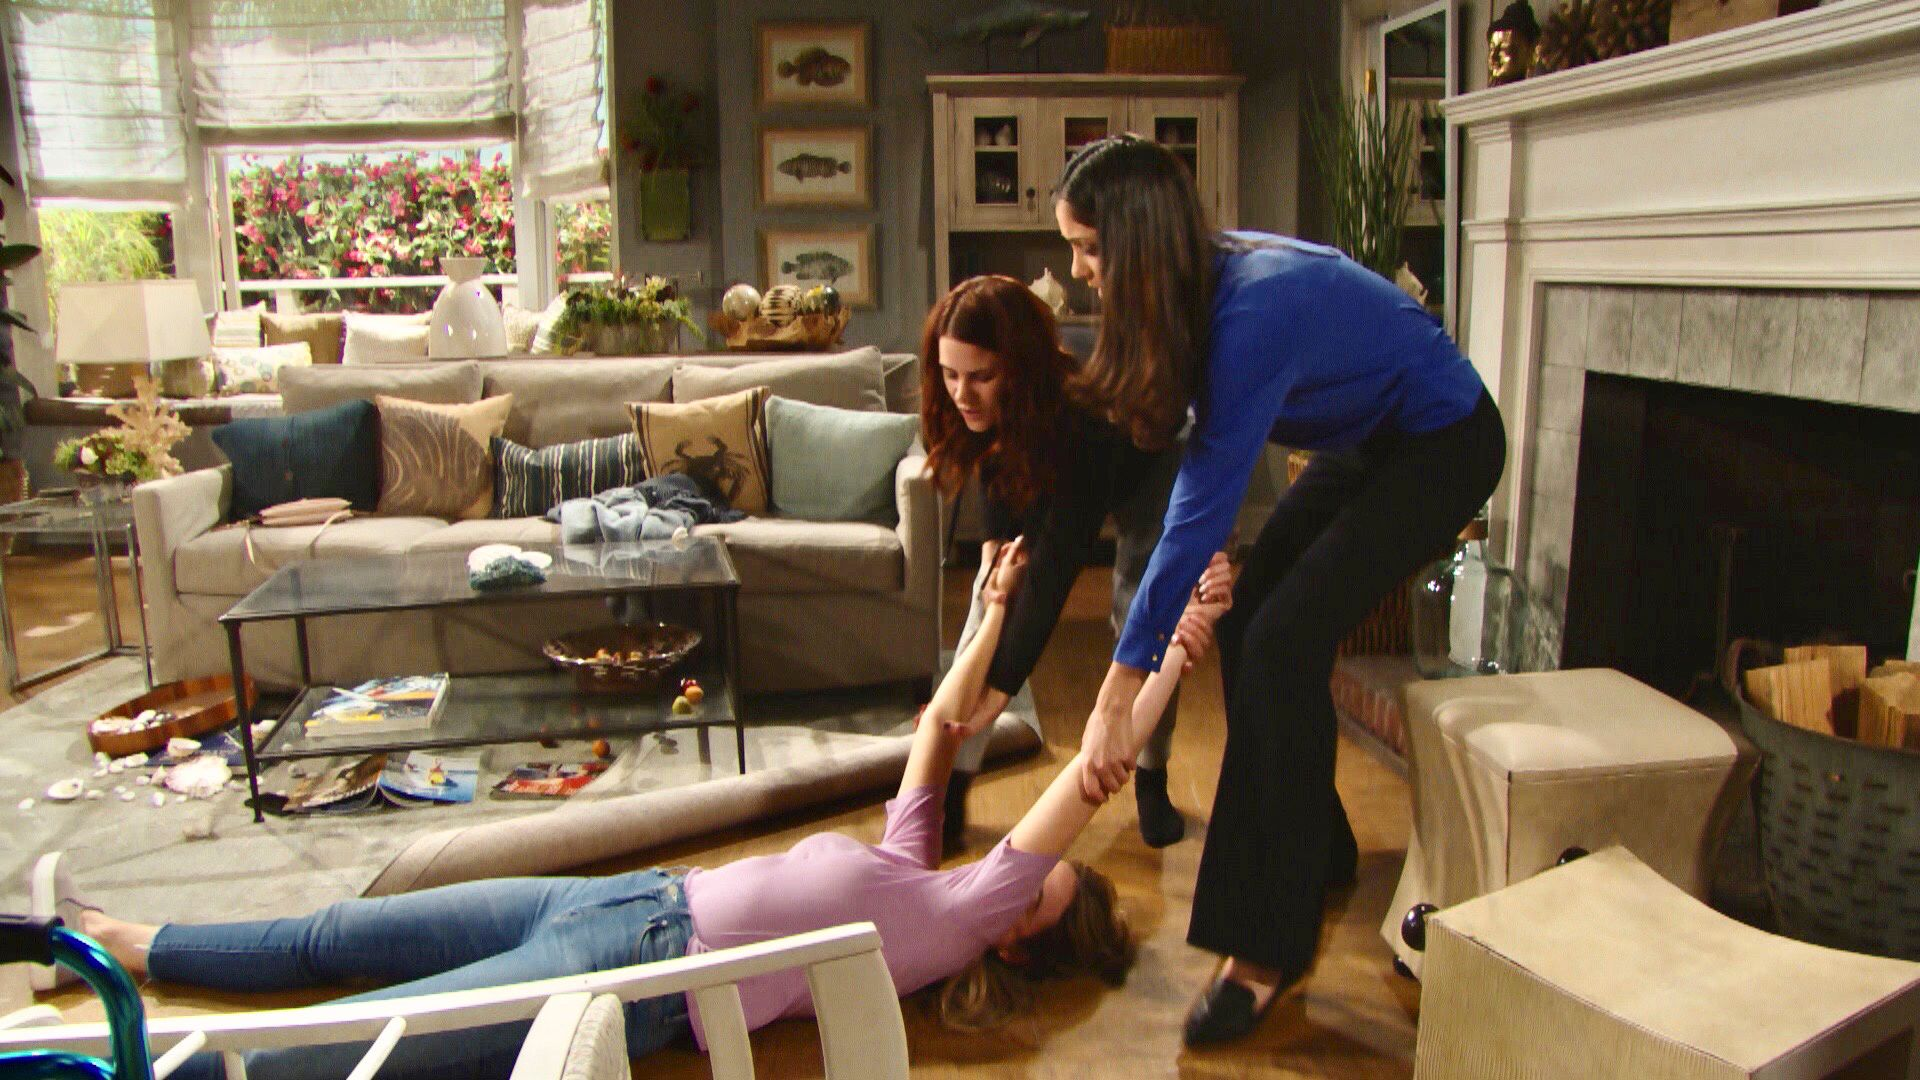 Katrina Bowden as Flo lies on her back on the living room floor, while Courtney Hope as Sally and Monica Ruiz as Dr. Escobar grasp her arms as they drag her toward the fireplace.